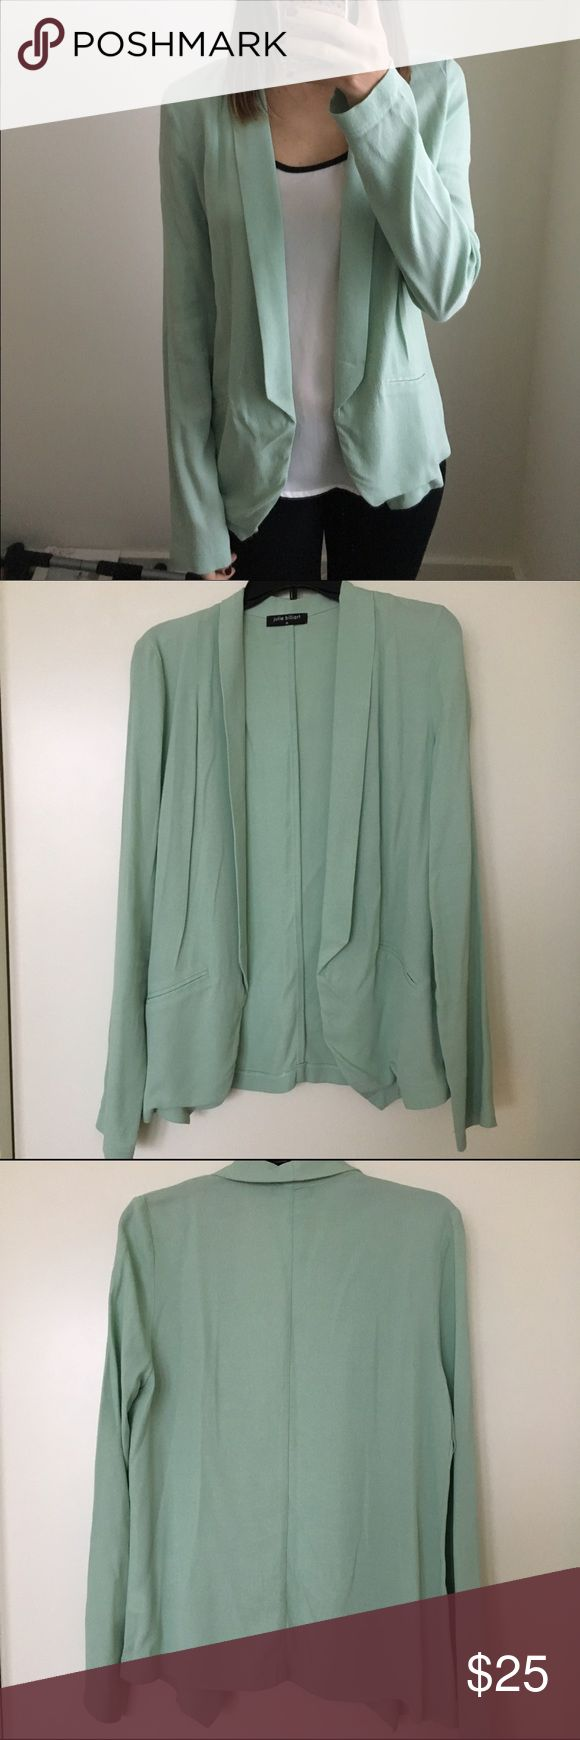 Mint Blazer Loose fitting blazer. 60% rayon, 40% viscose. Bought from Bevello boutique. Jackets & Coats Blazers